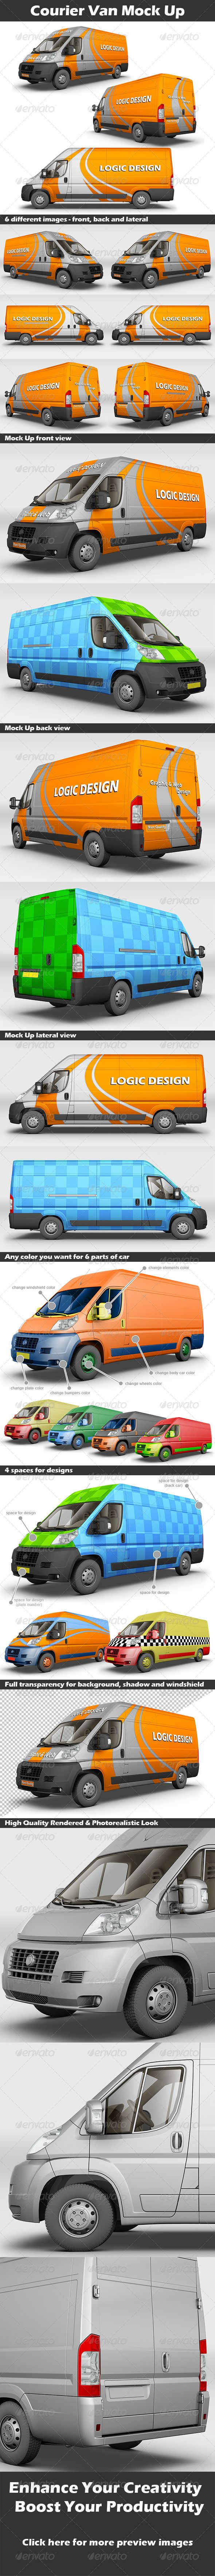 Car sticker design psd - 17 Best Images About My Vehicle Templates On Pinterest Cars Trucks And Van Car